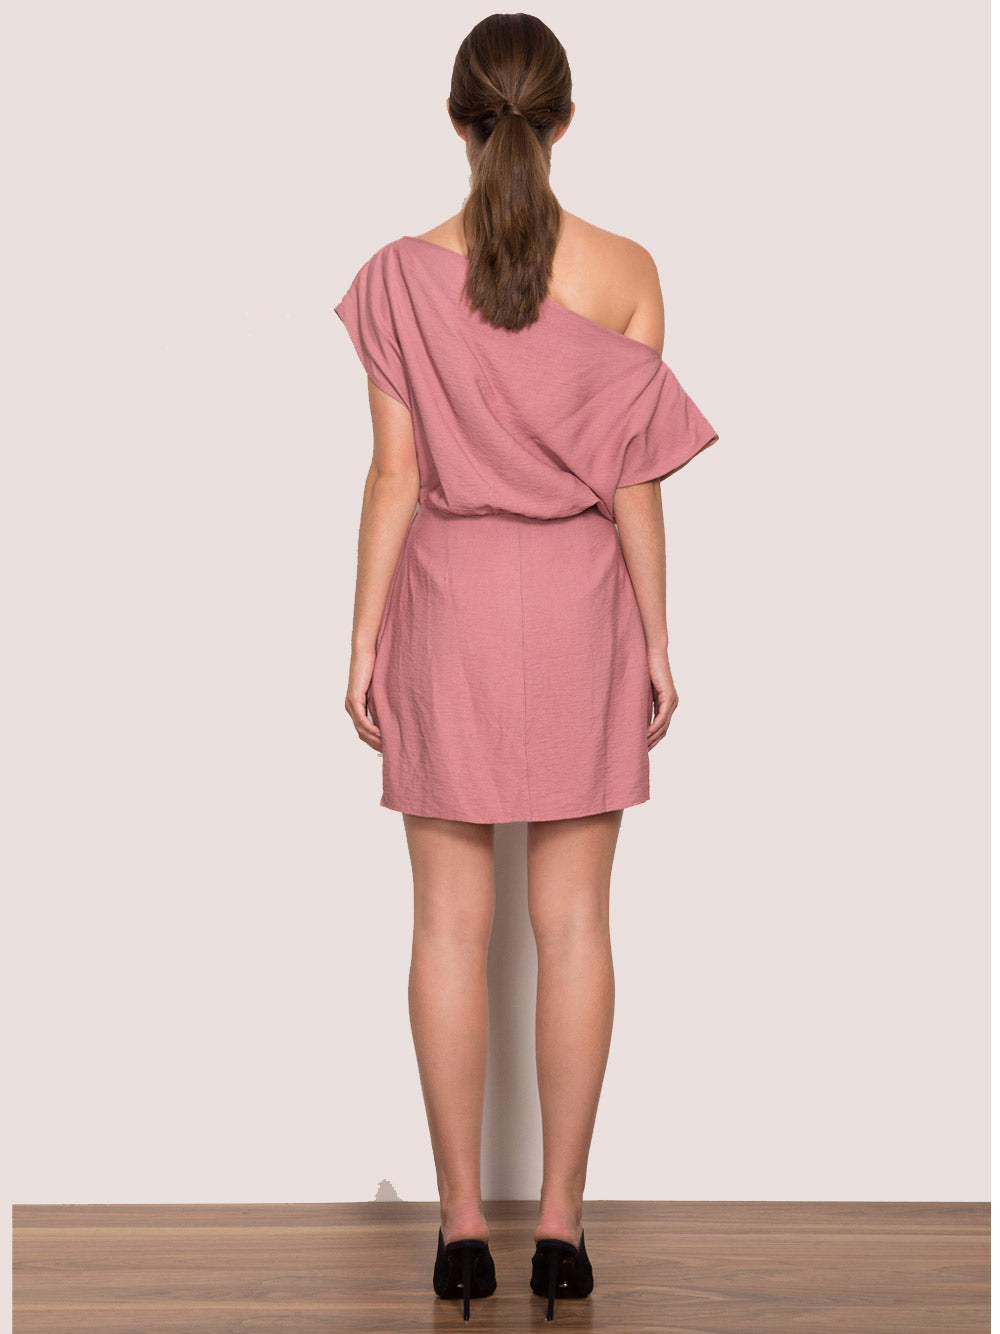 WISH Close Enough Dress - Dusty Rose